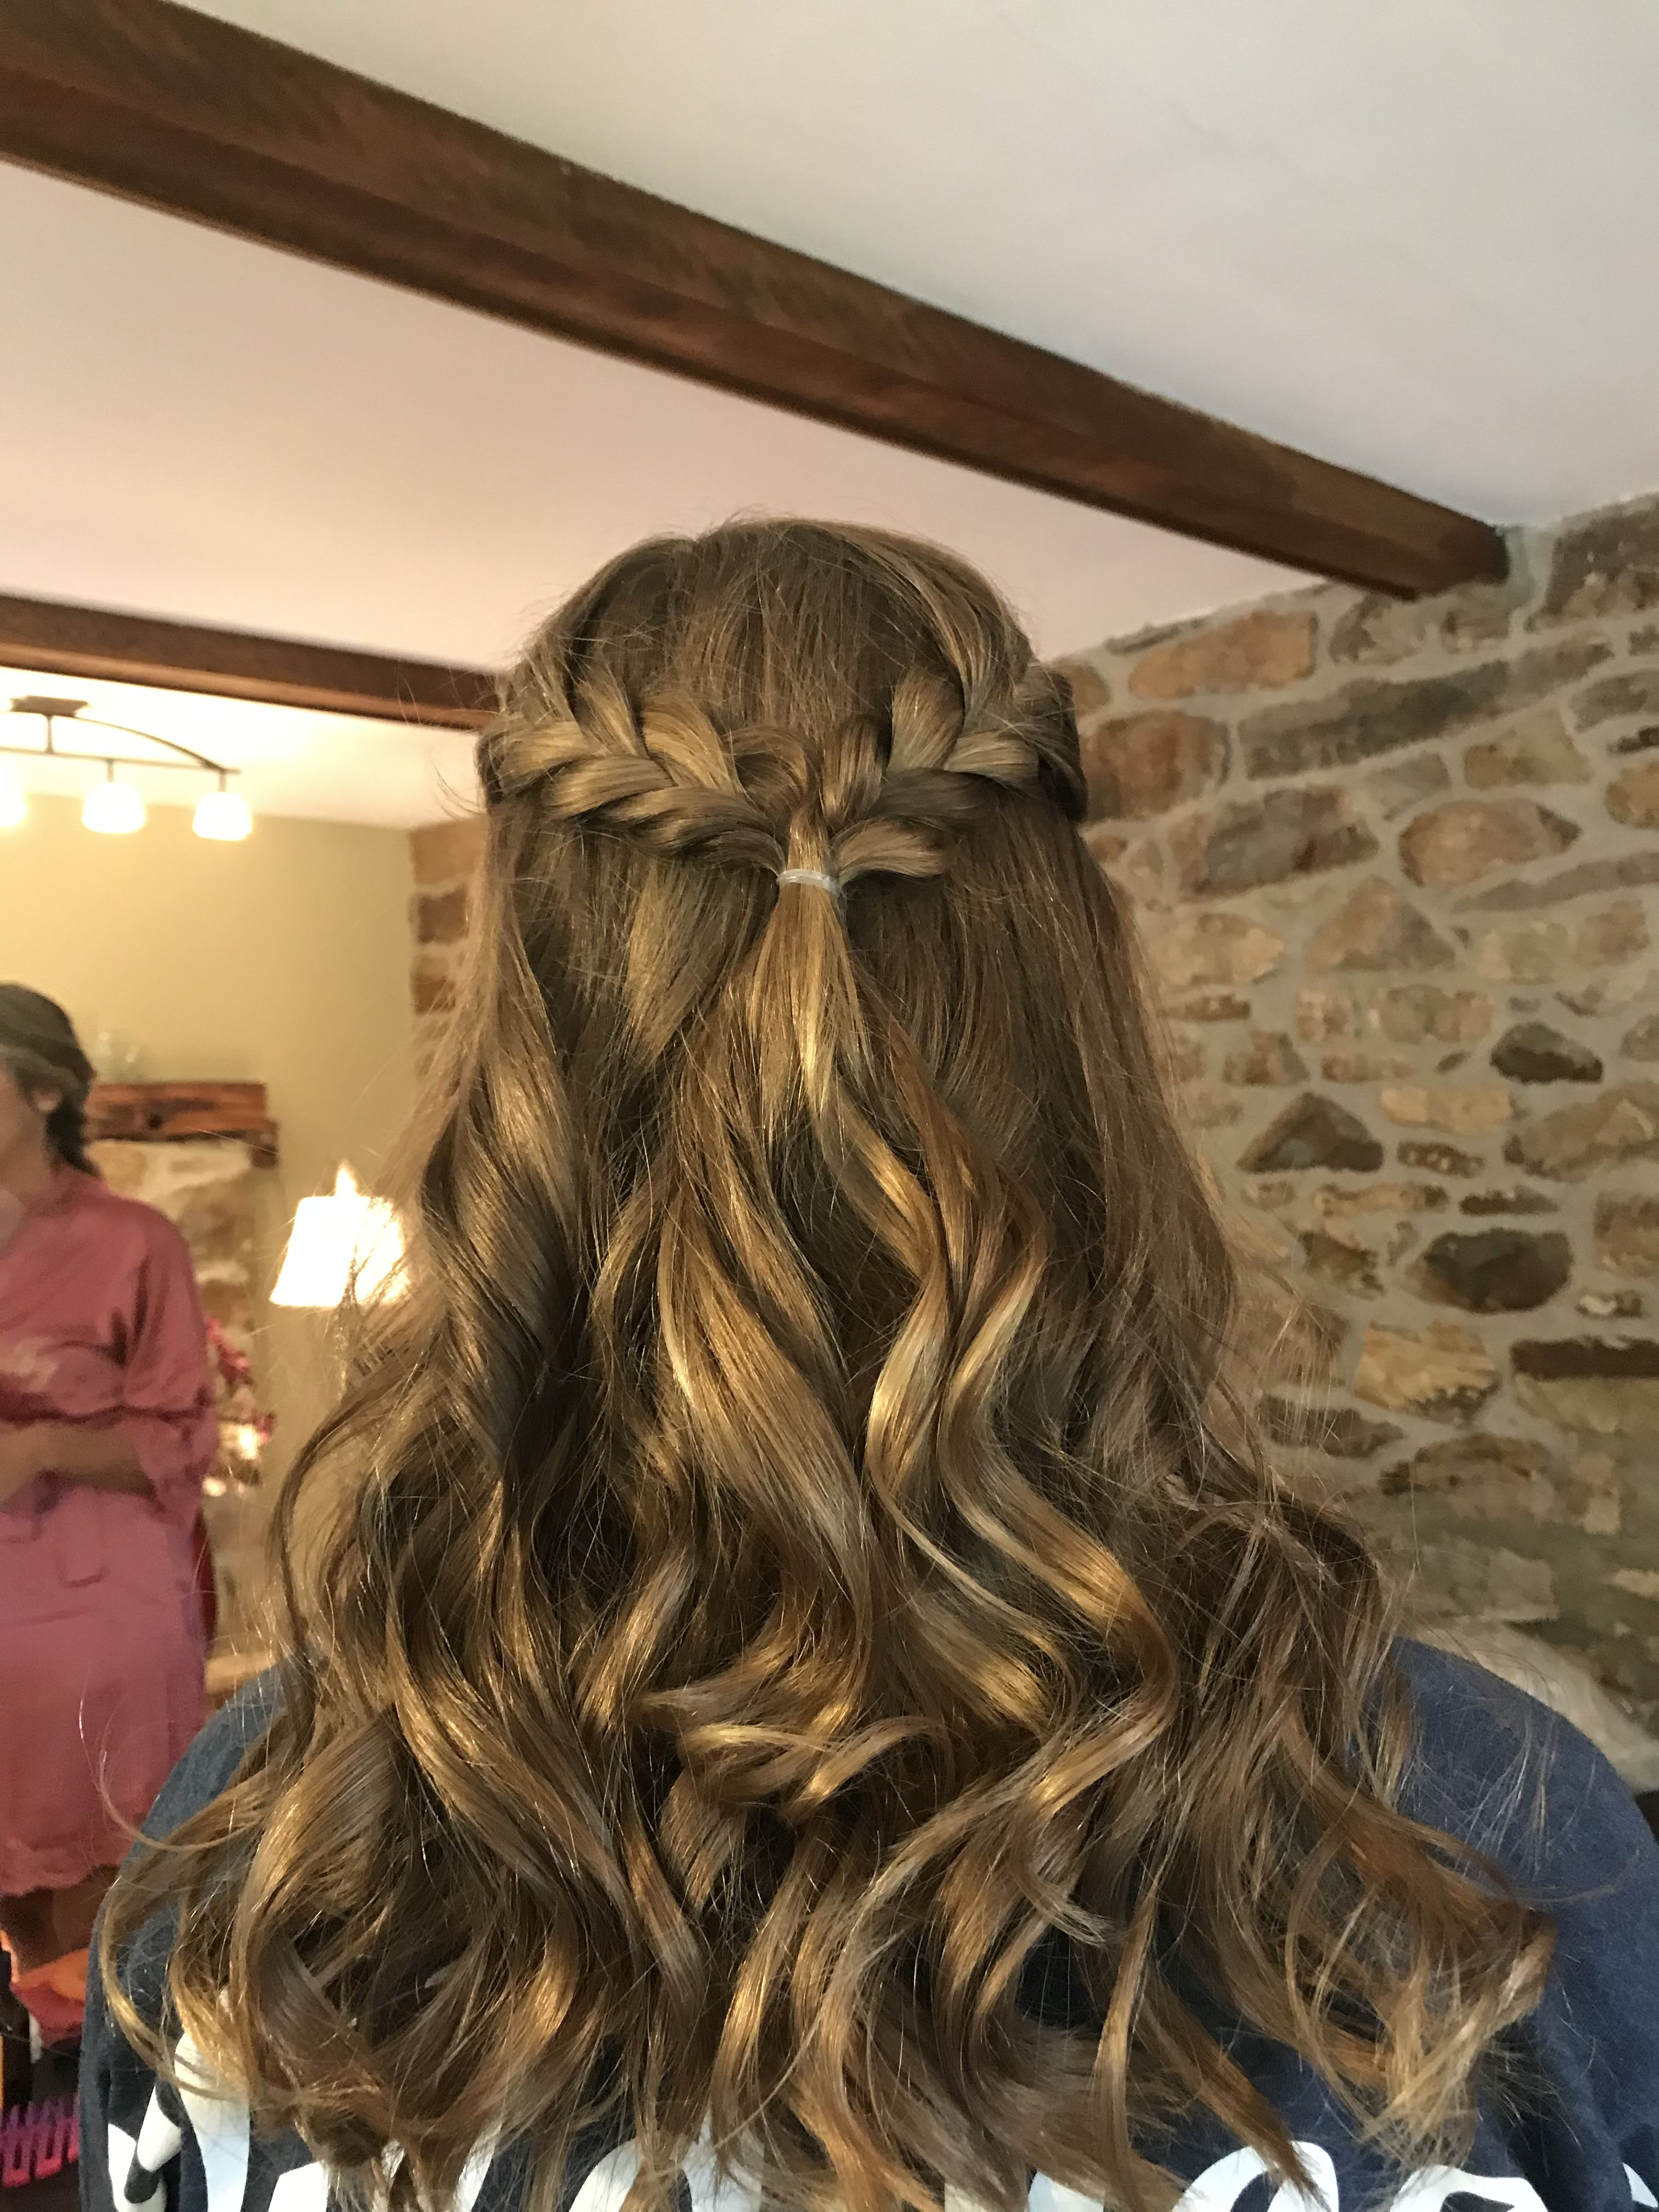 Pin By Anna Thomas On Hairstyles Hair Styles Half Braided Hairstyles Long Hair Styles